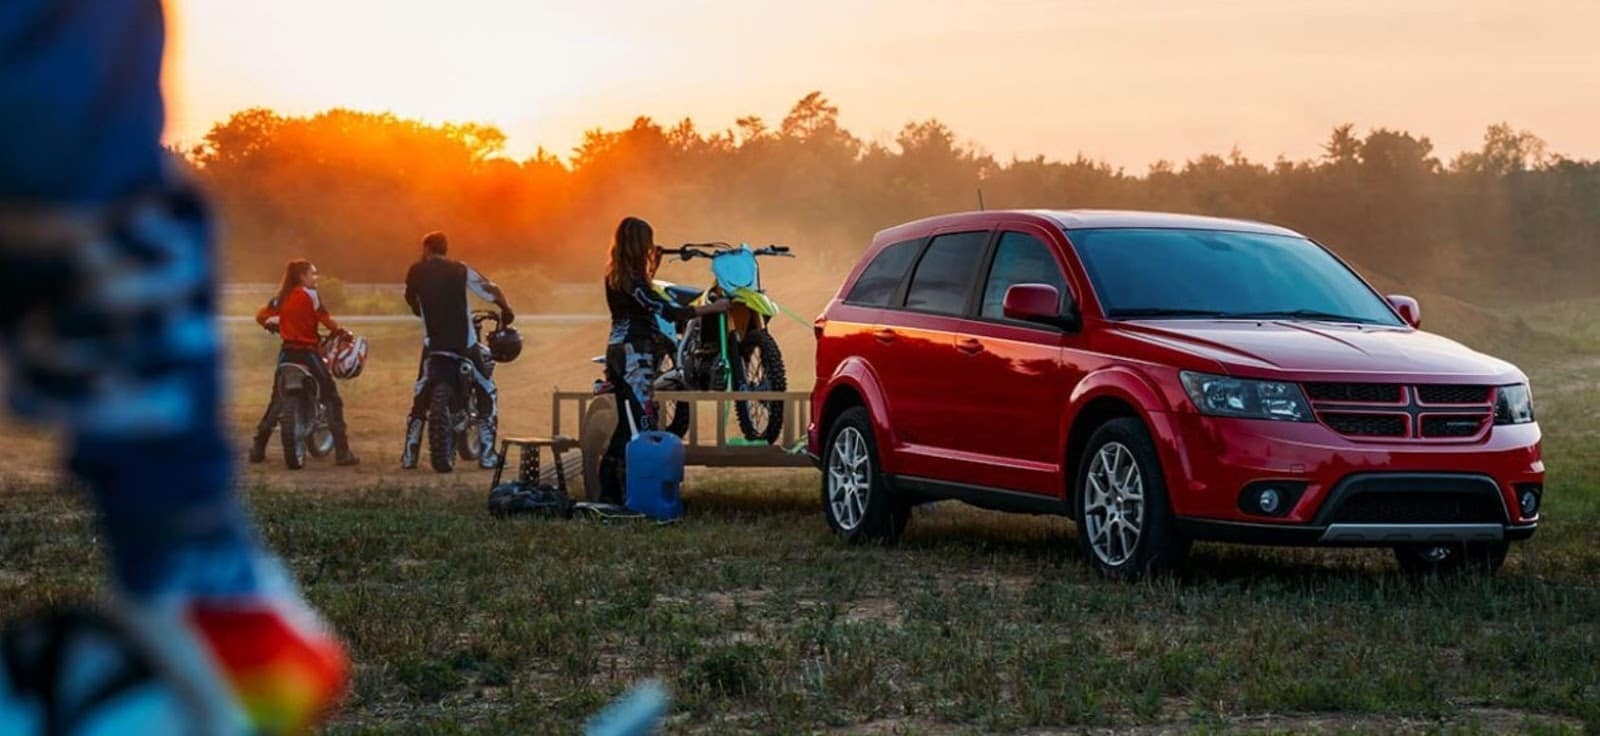 red dodge journey at sunset towing dirtbikes of family in a lush green field with family out of focus